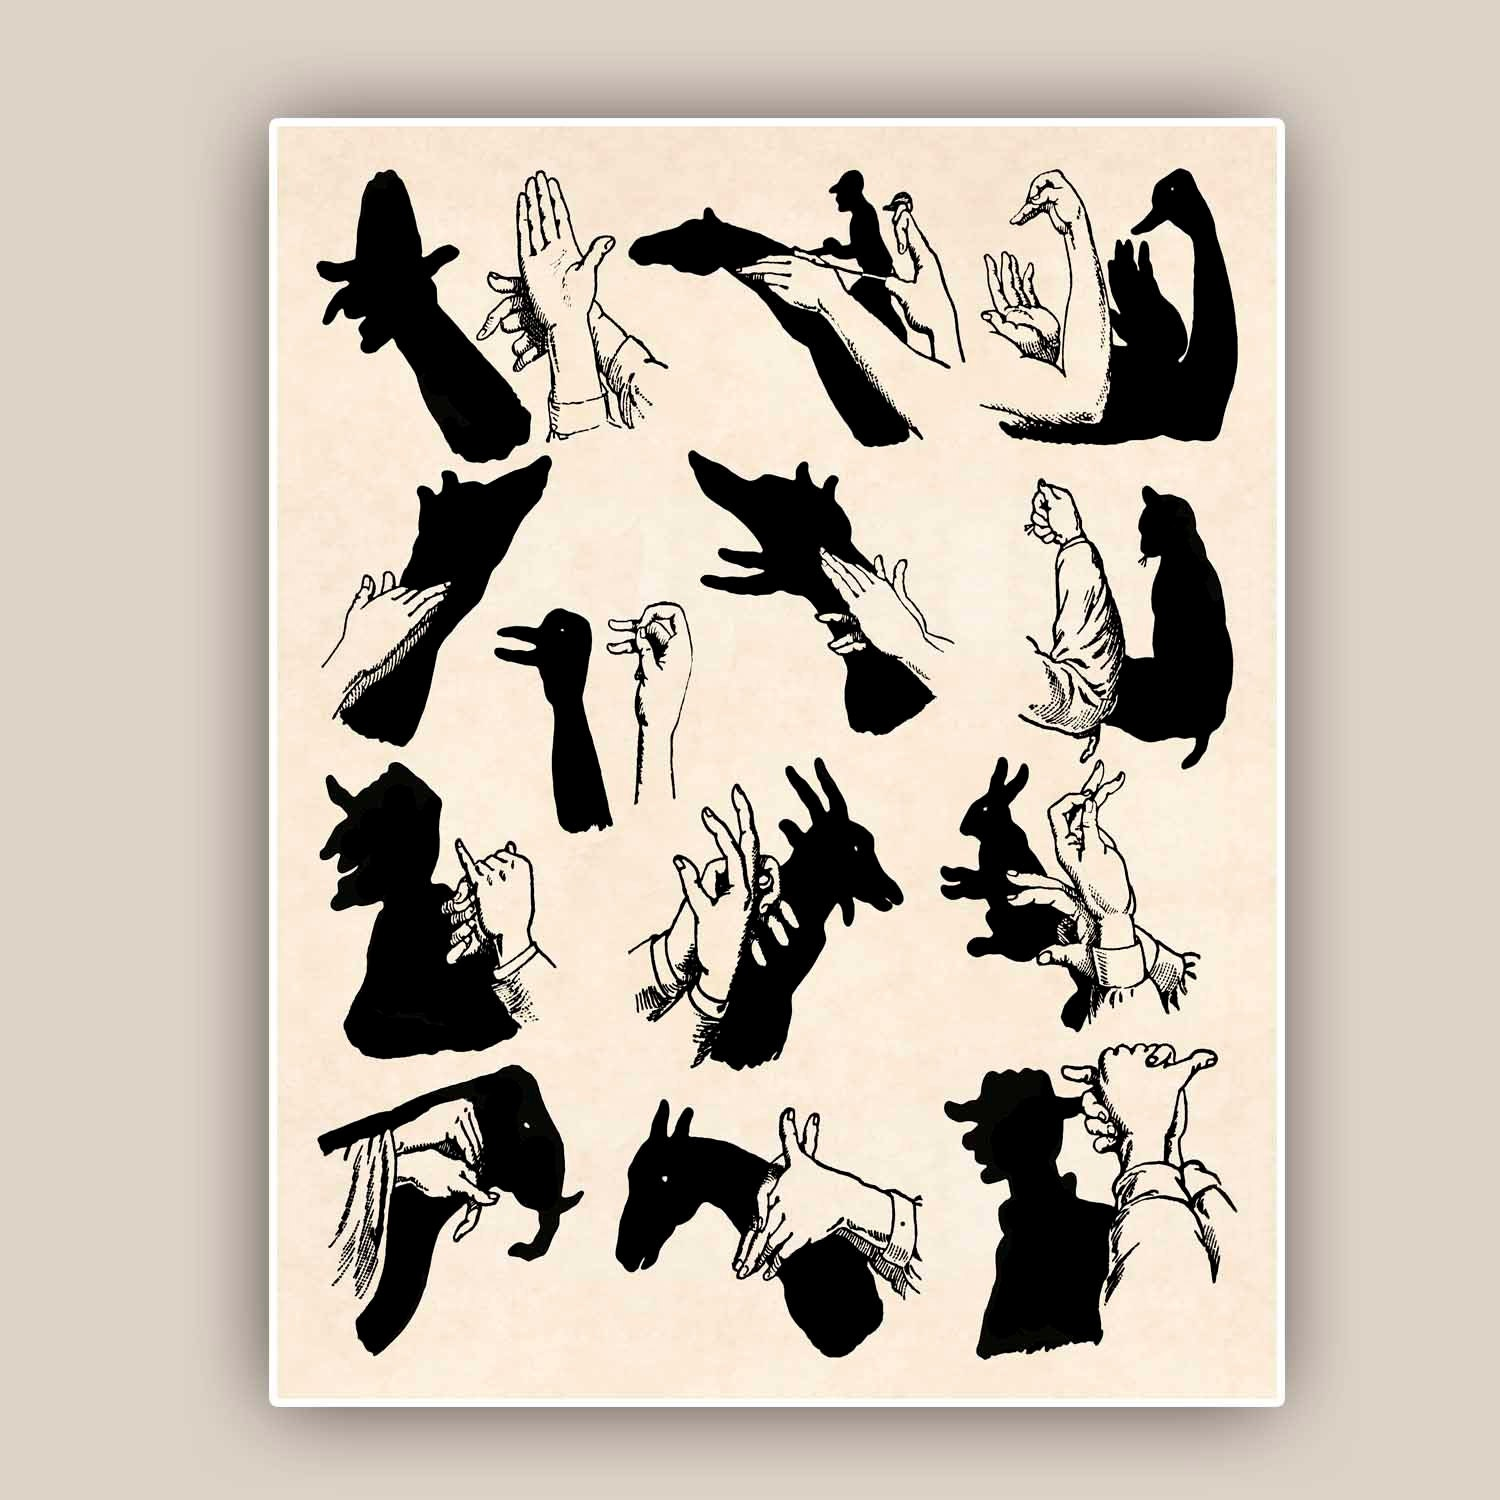 Shadow puppet print hand shadow puppets ombromania zoom pronofoot35fo Gallery